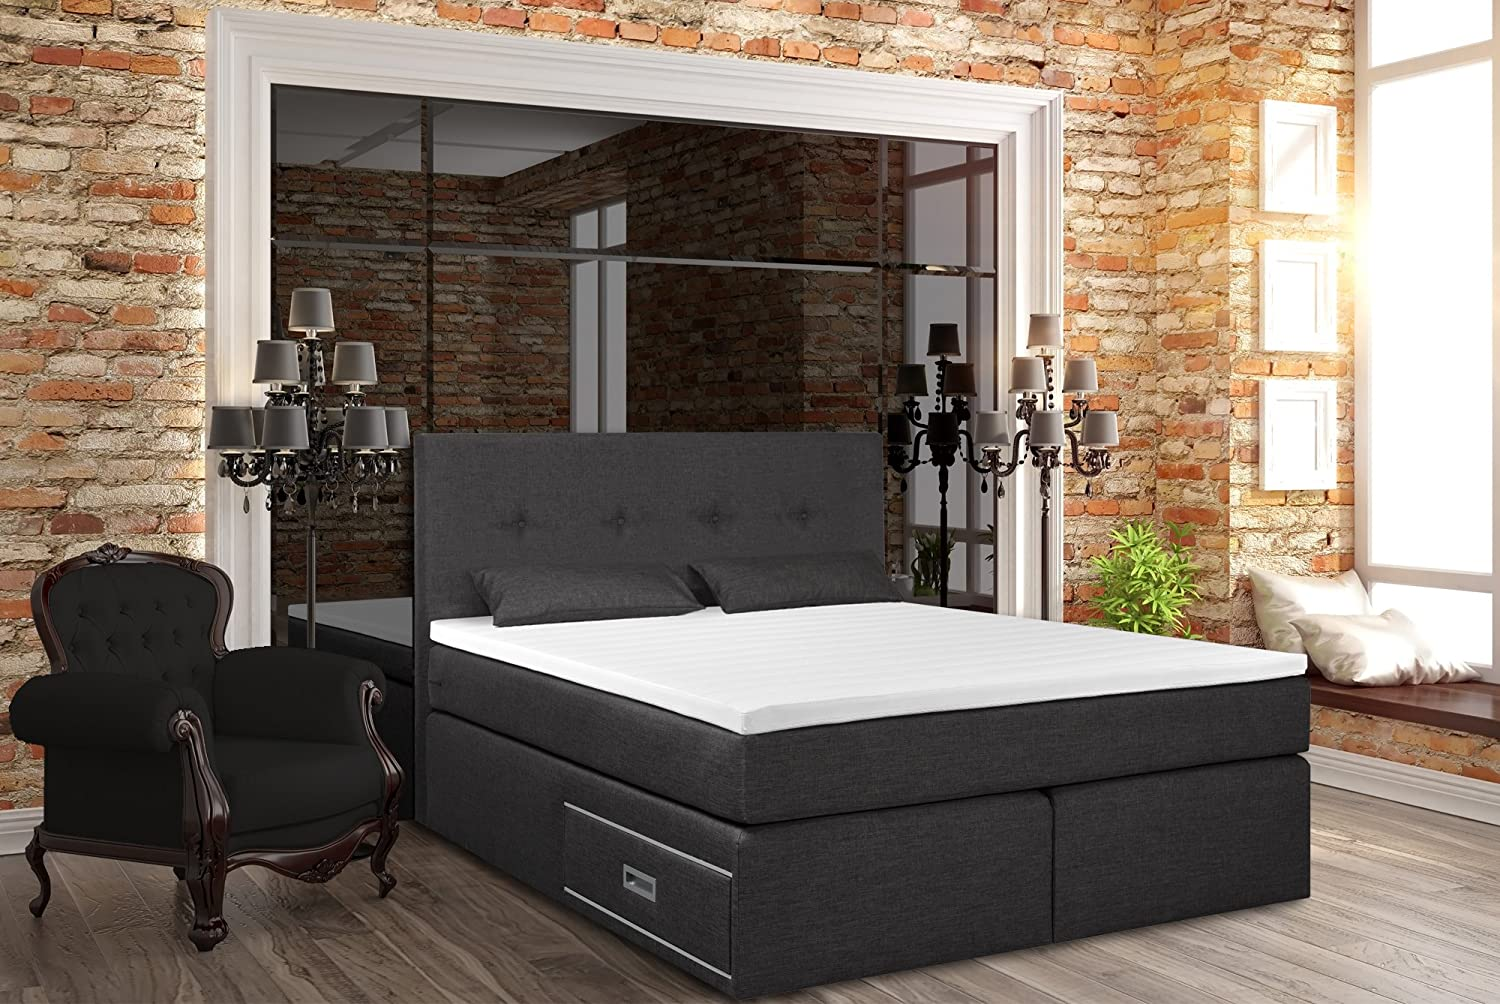 boxspringbett ankona 160x200 schublade 7 zonen. Black Bedroom Furniture Sets. Home Design Ideas